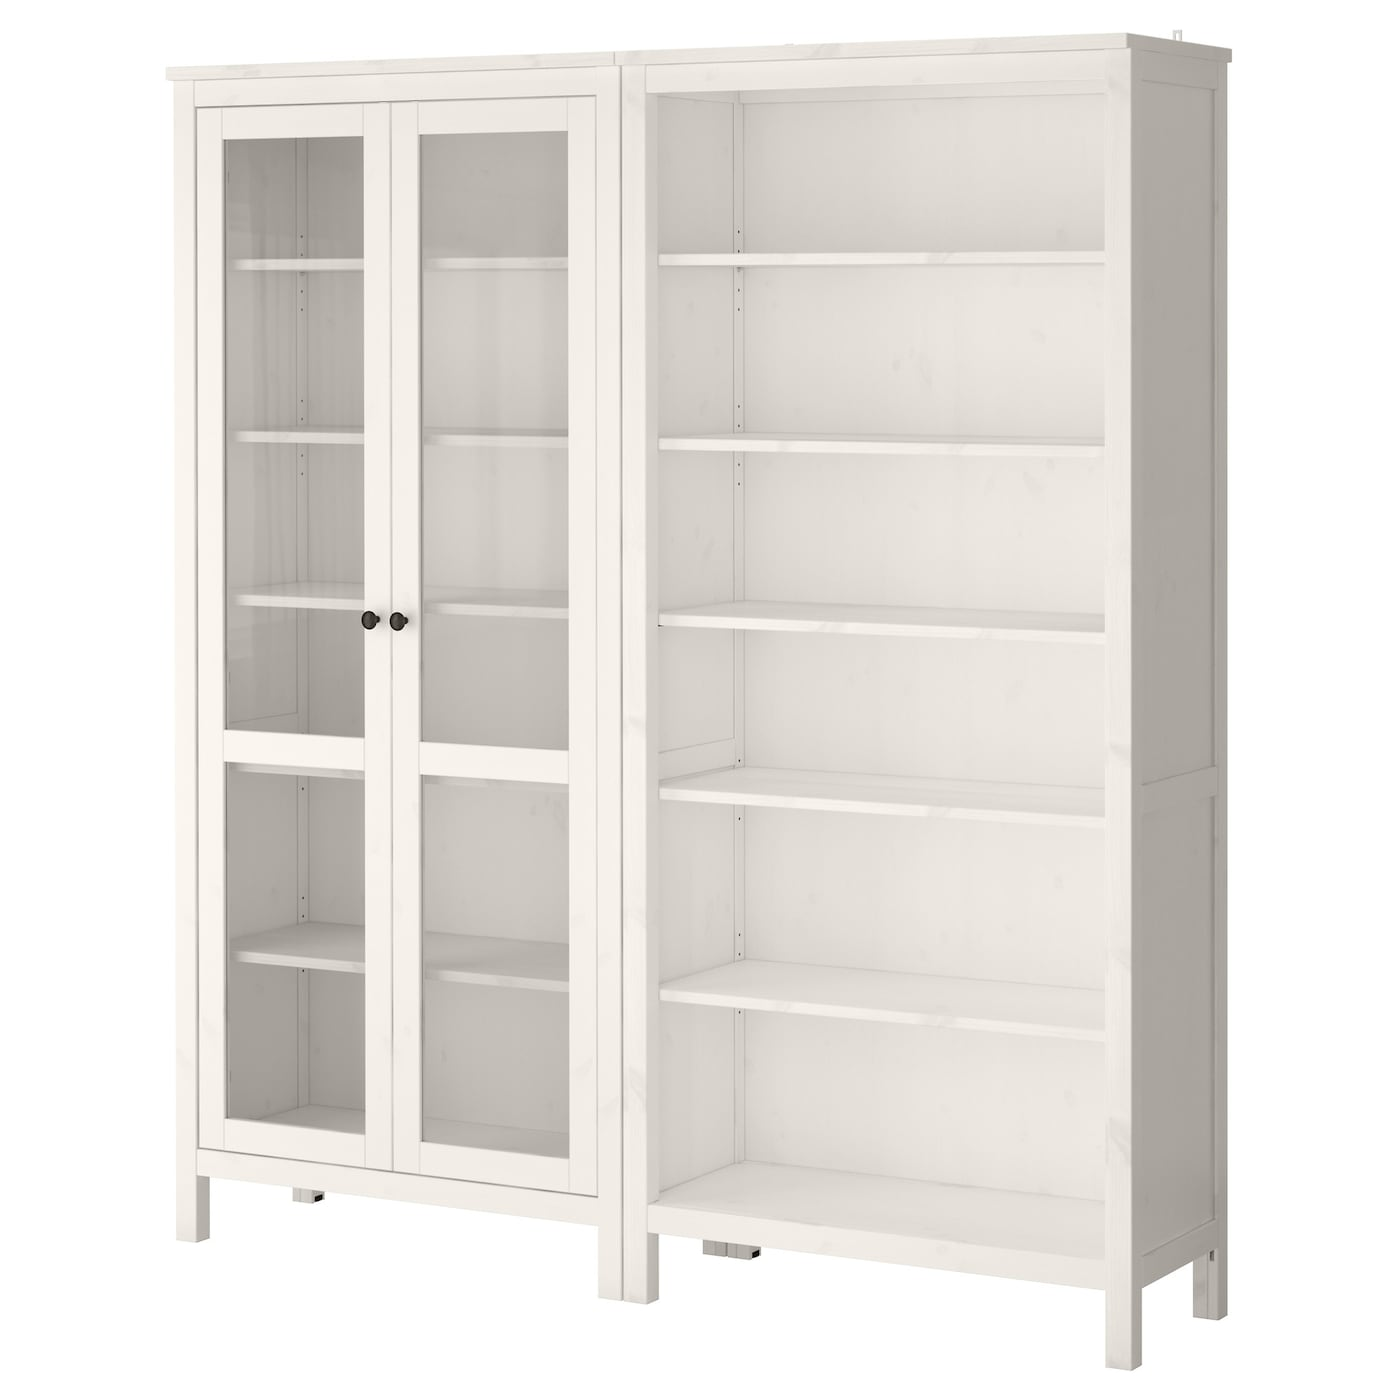 hallway organiser unit platform end entry entrance tree furniture full small king seating shoe antique seat table with dining banquette of ikea bench underneath ideas white coat cube way narrow and size hall rack shelves storage entryway mudroom skinny bookshelf